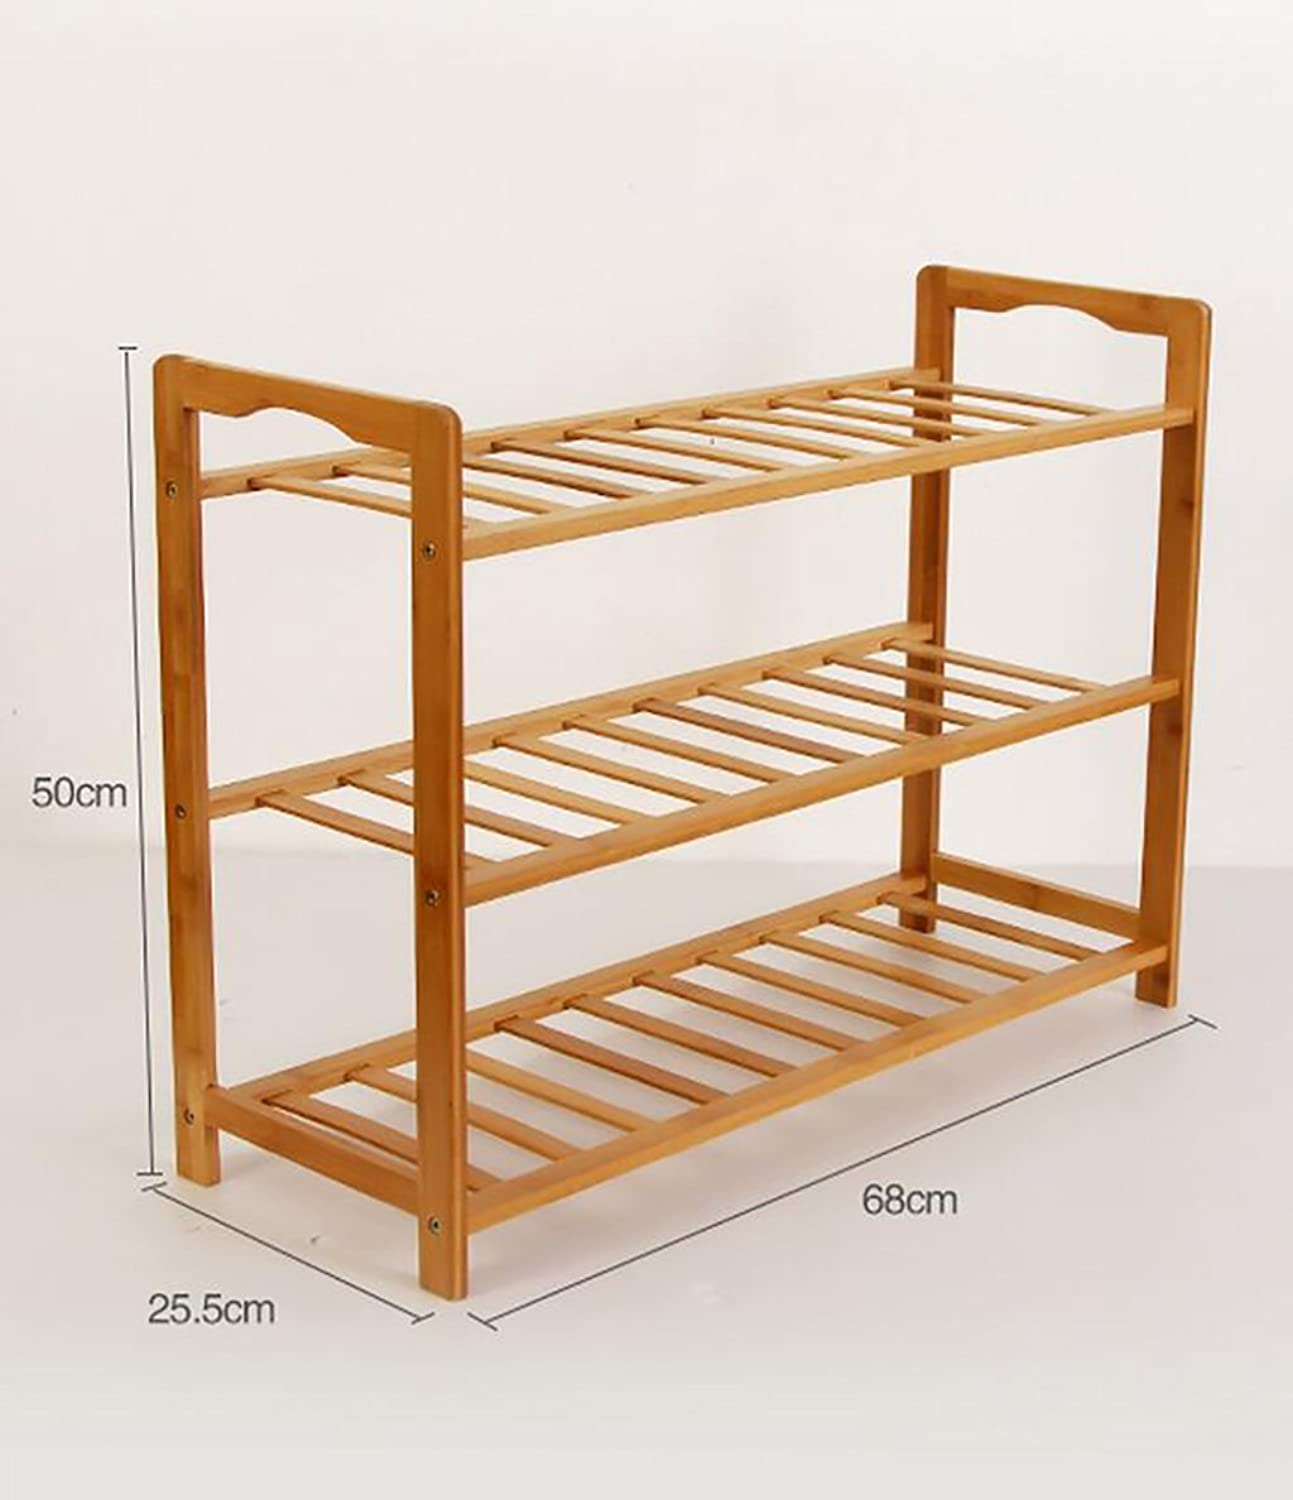 shoes Bench Organizing Rack Bamboo Simple shoes Rack Multi - Storey Dormitory shoes Frame Economic Home Assembly dust - Proof Solid Wood shoes Rack (color   1, Size   68cm)